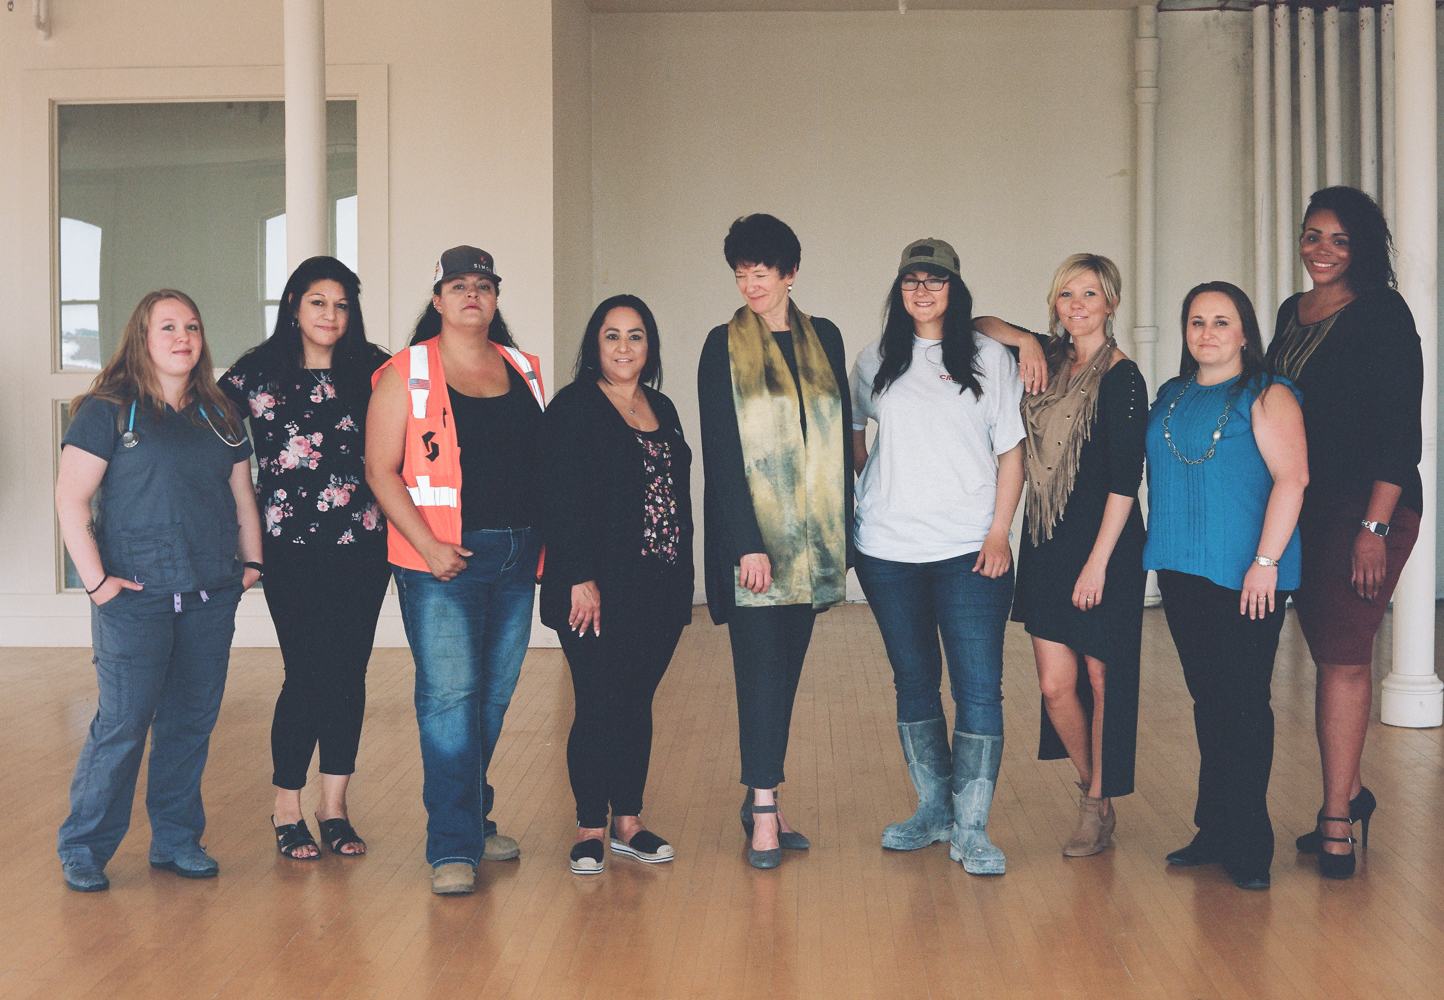 Graduates, staff and the founder of Climb Wyoming — a statewide nonprofit empowering low income, single moms by providing free career training, mental health counseling and job placement in six Wyoming communities. Left to Right: Shaylynn, Val, Irene, Brenda, founder Dr. Ray, Sarah, Misty, Amy and Artesia.